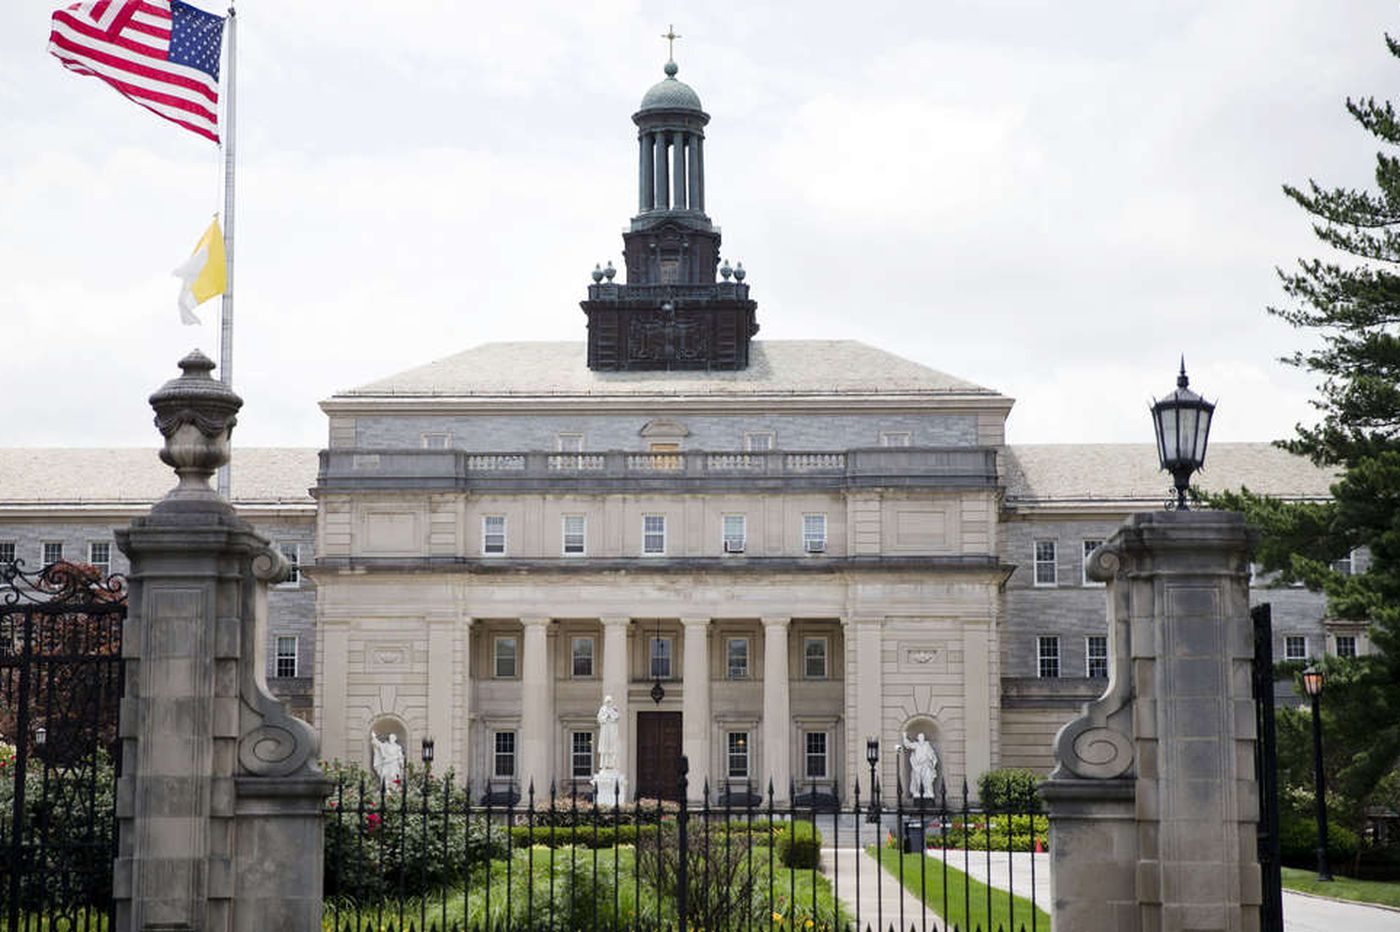 Archdiocese of Philadelphia's 75-acre seminary property in Lower Merion is sold